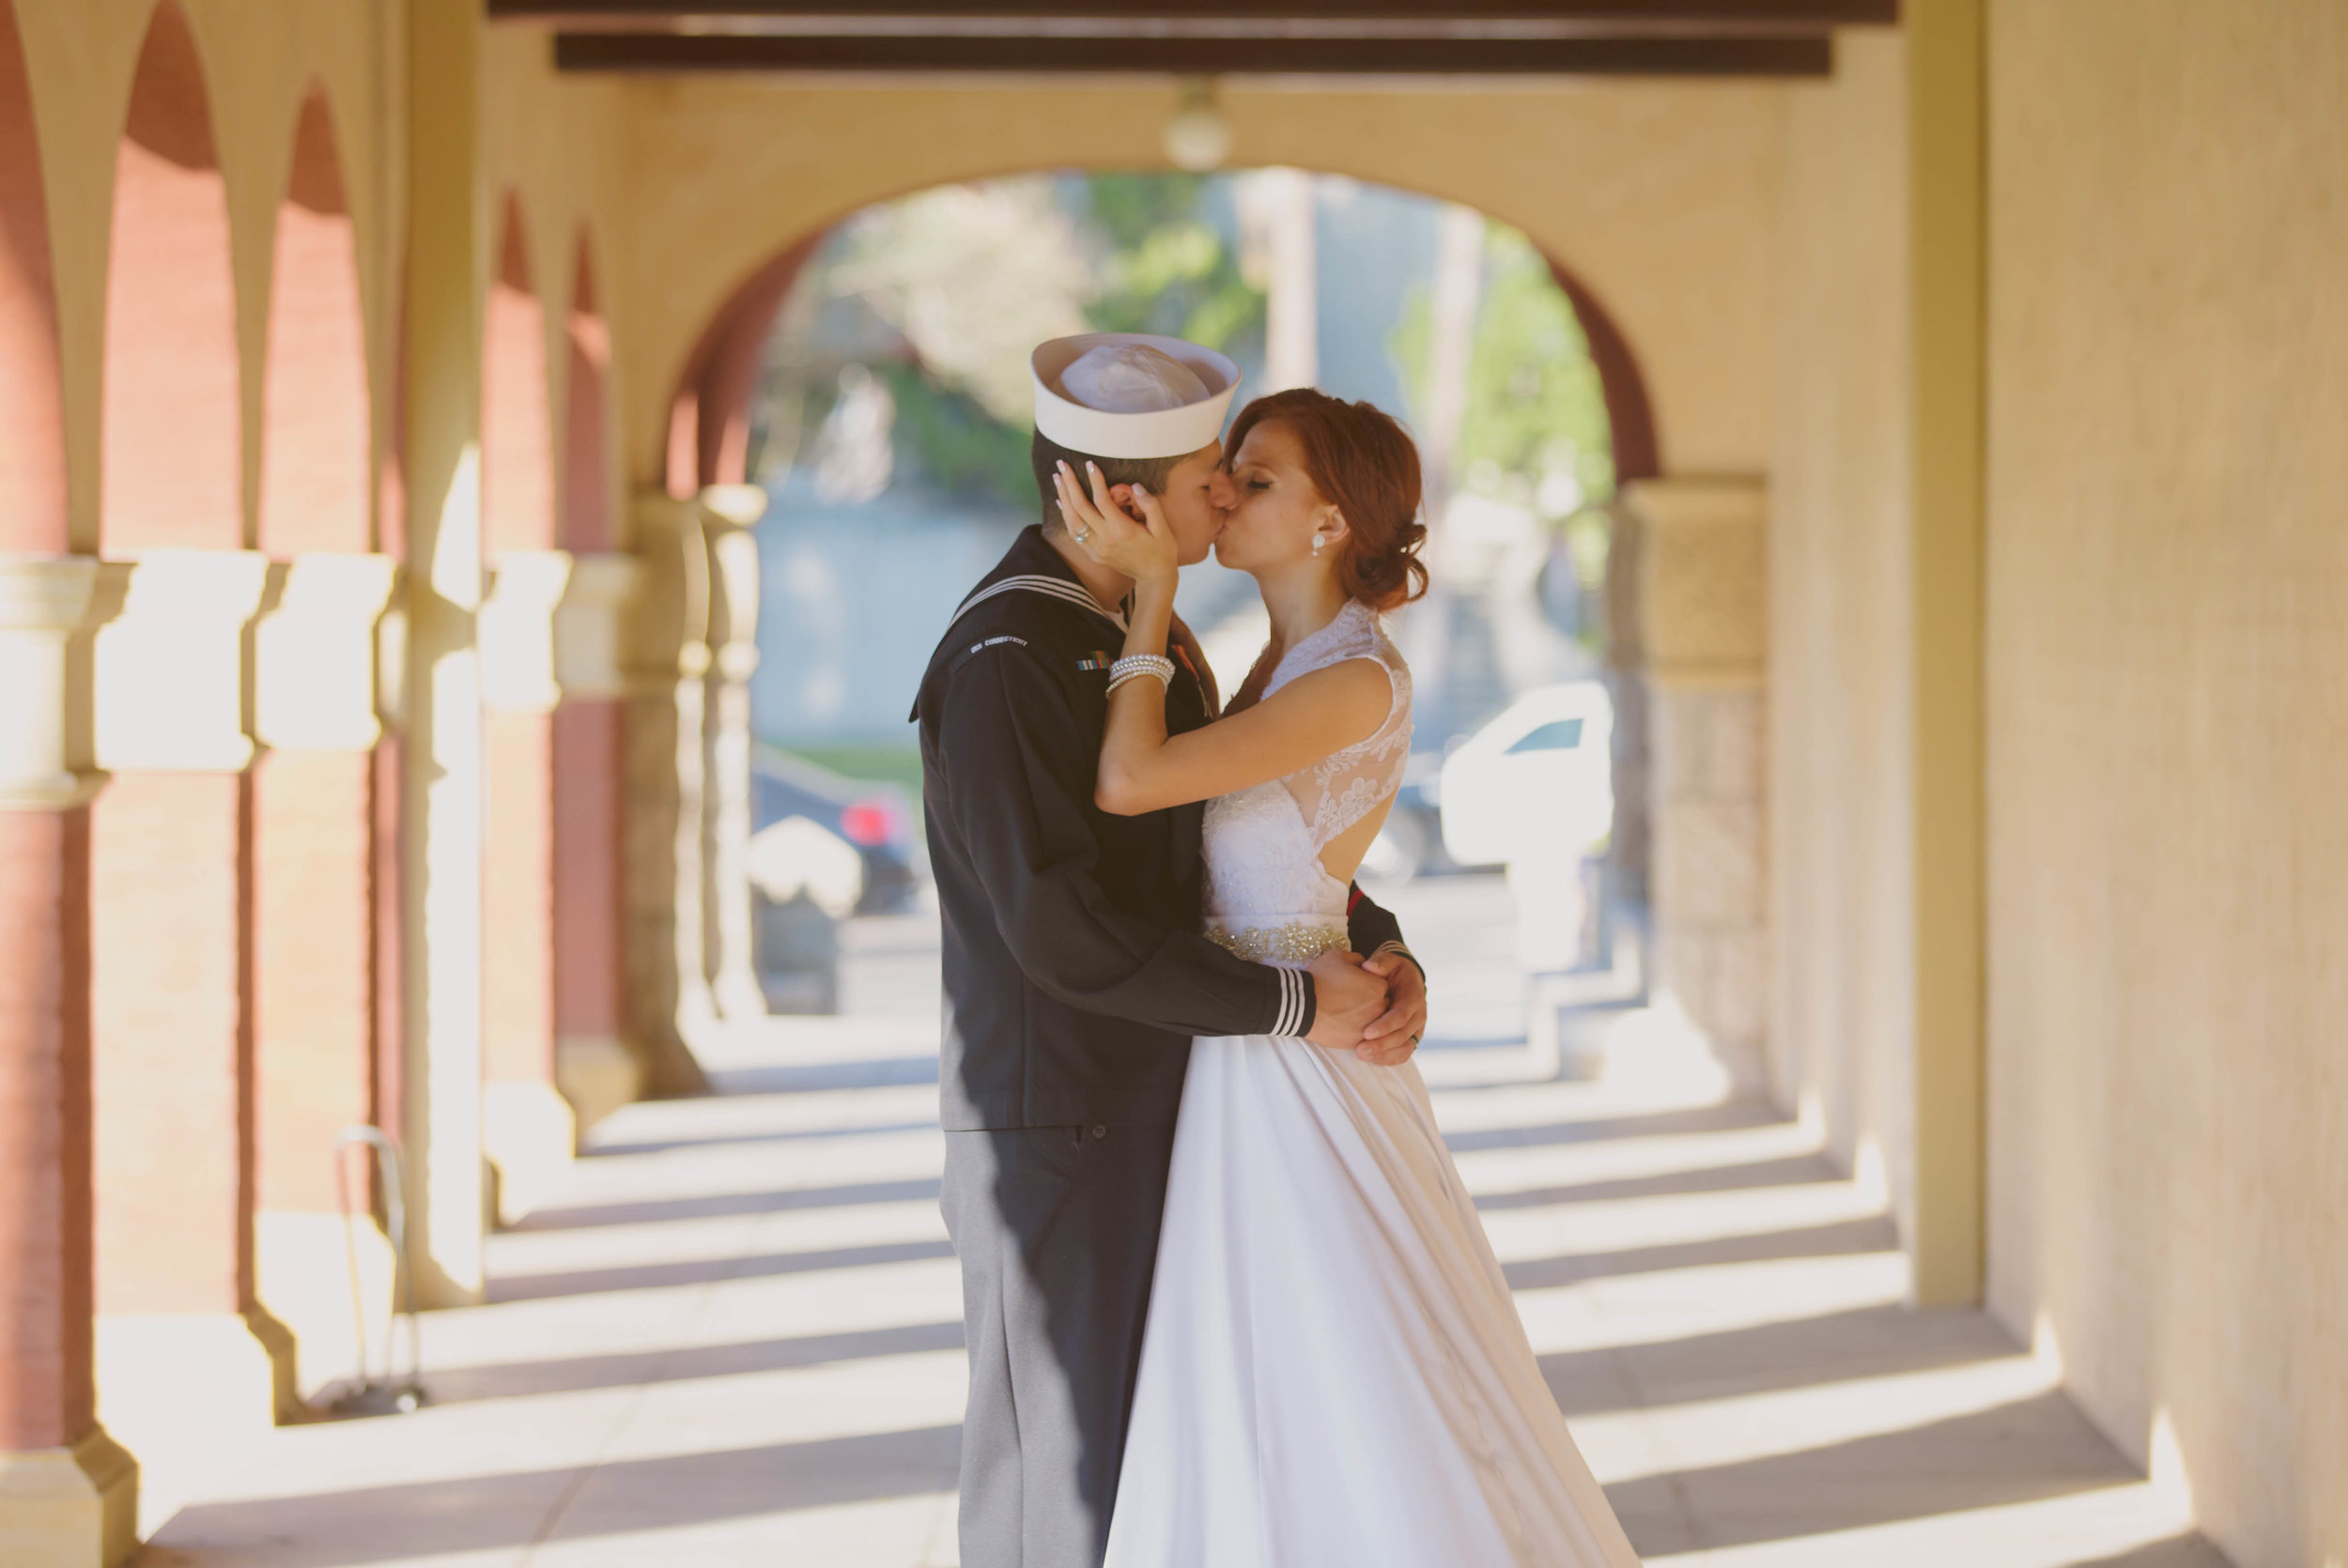 20140809-CruzWeddingRedlands-0056-sm.jpg